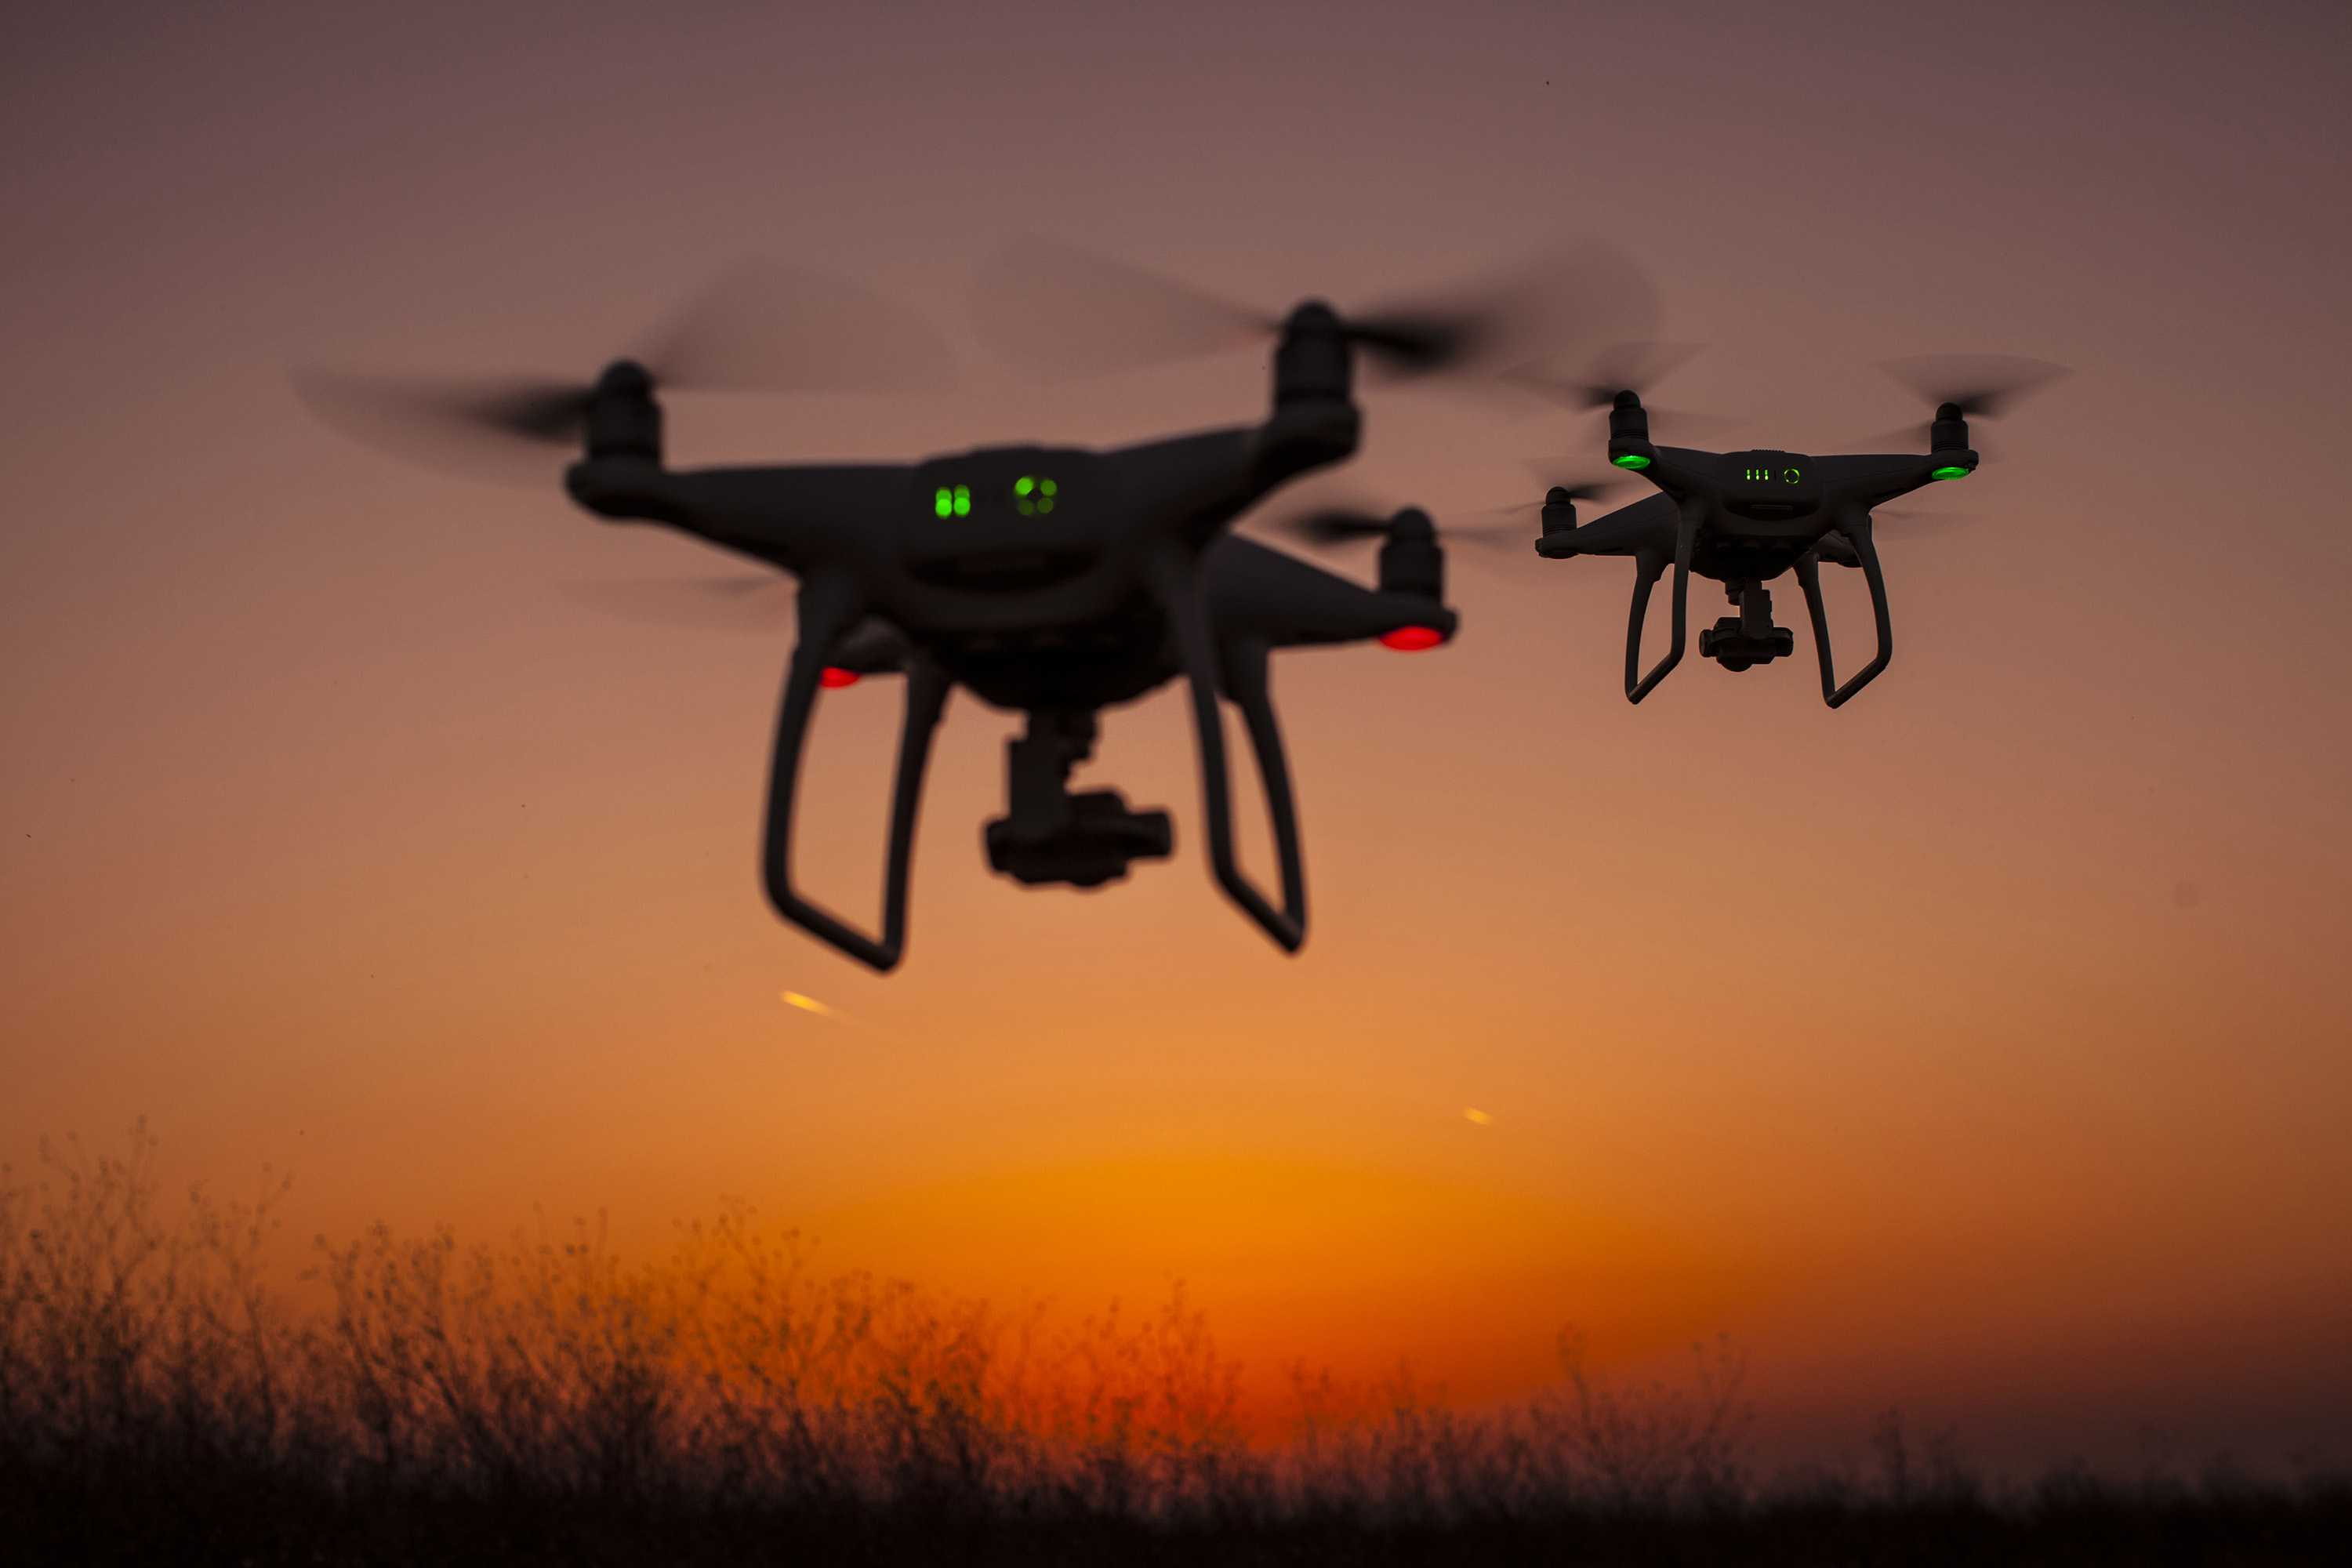 two drones flying in the sunset